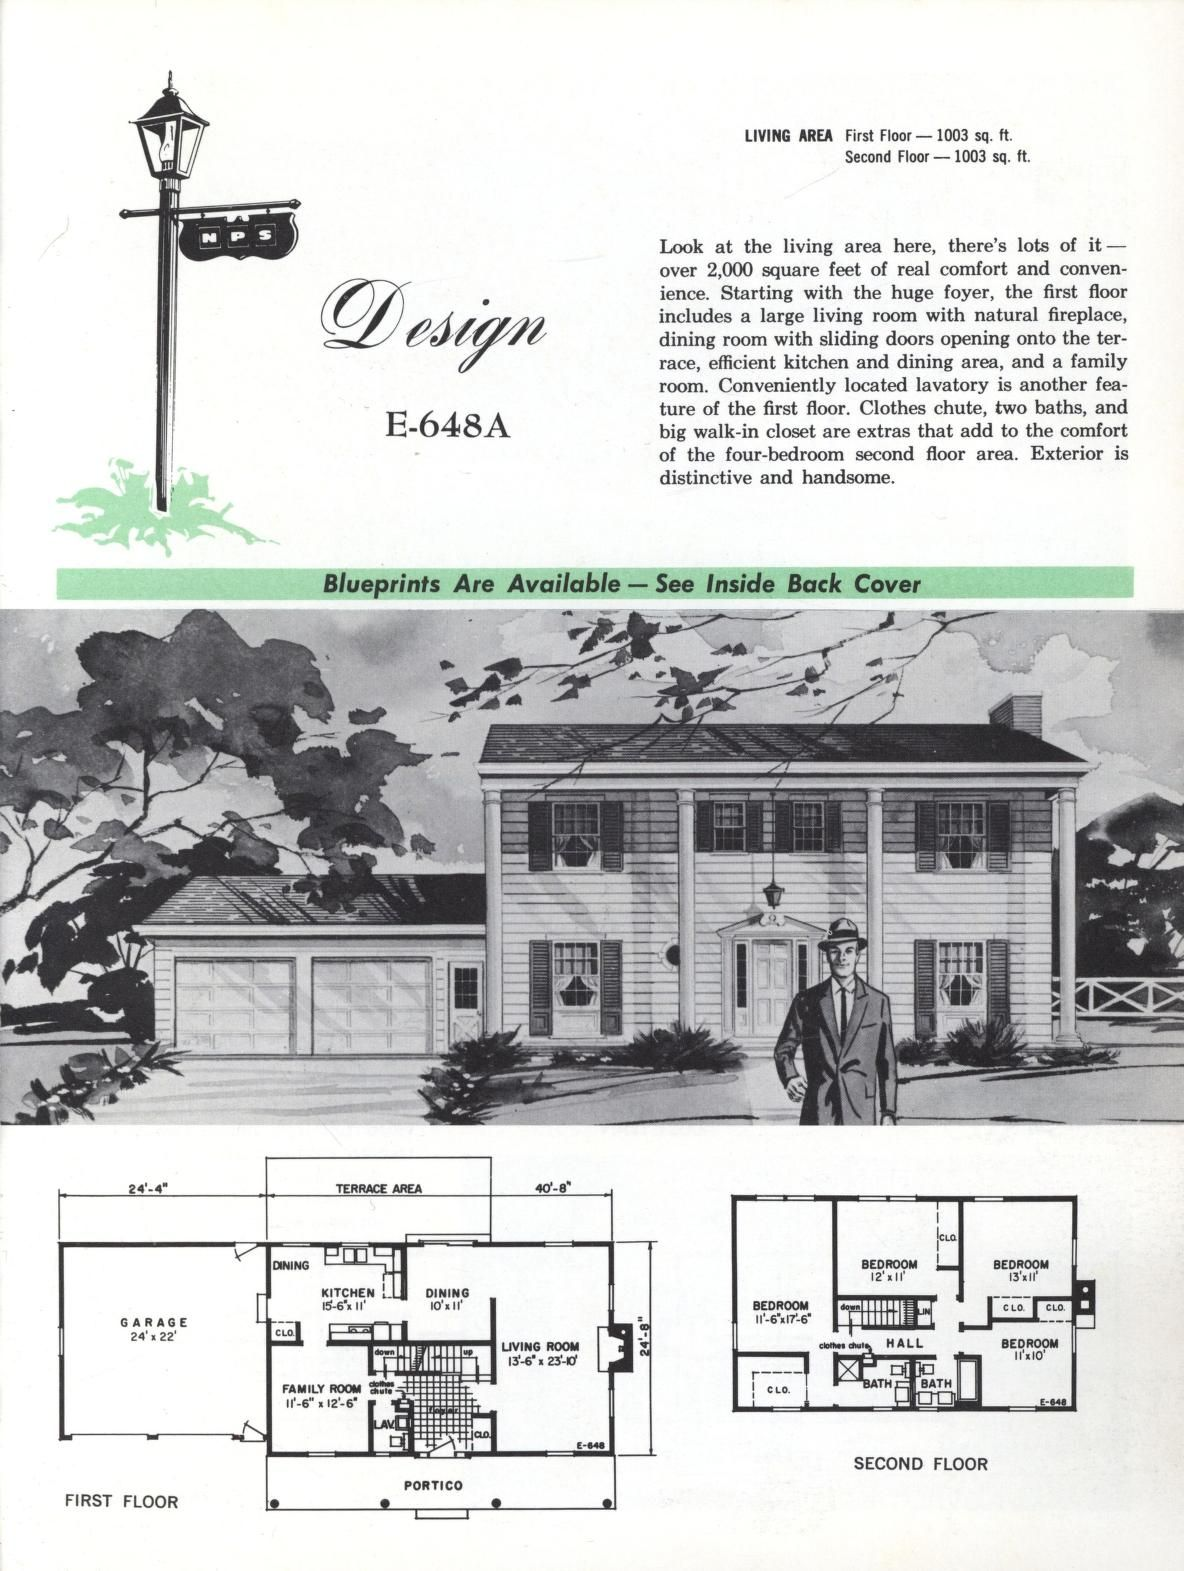 Pin By Sascha Lee On Floorplans In 2021 Vintage House Plans Colonial House Plans Colonial House